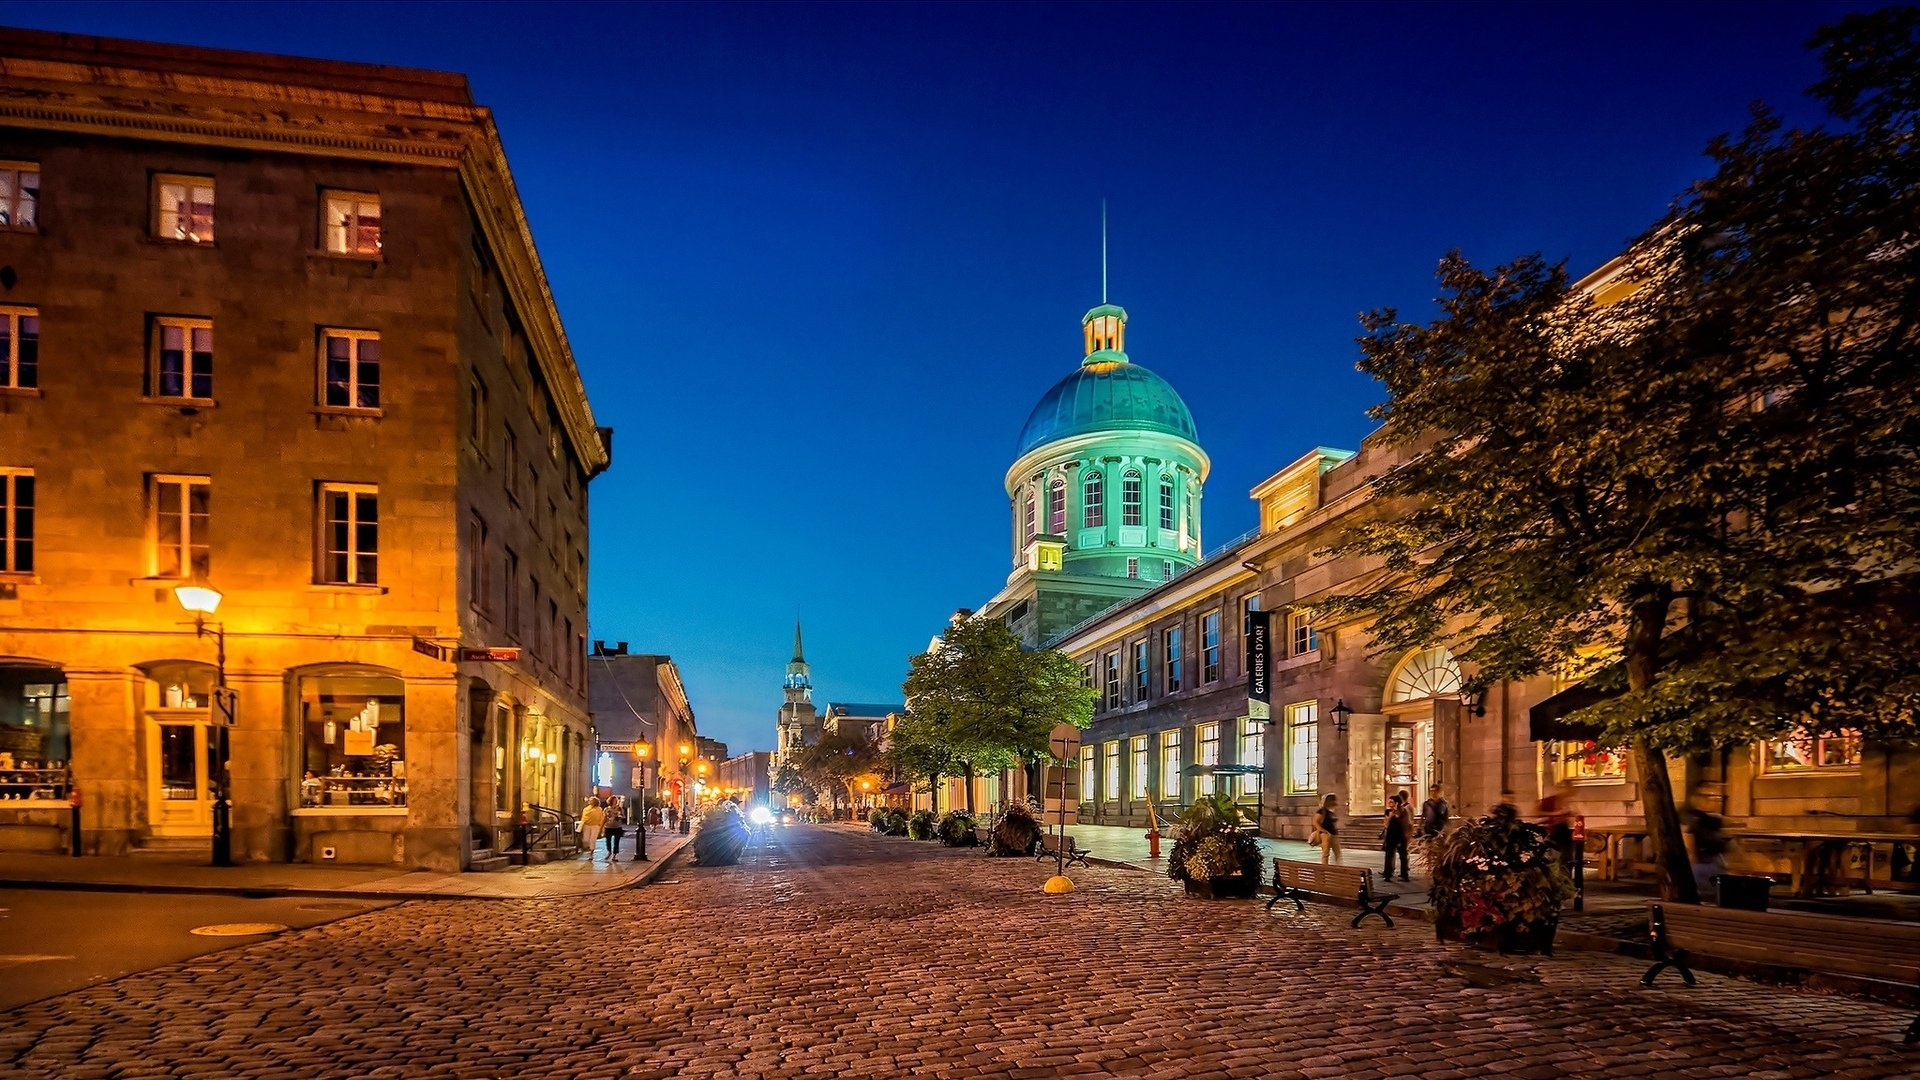 Man Made - Montreal  Man Made Canada City Night Building Street Wallpaper